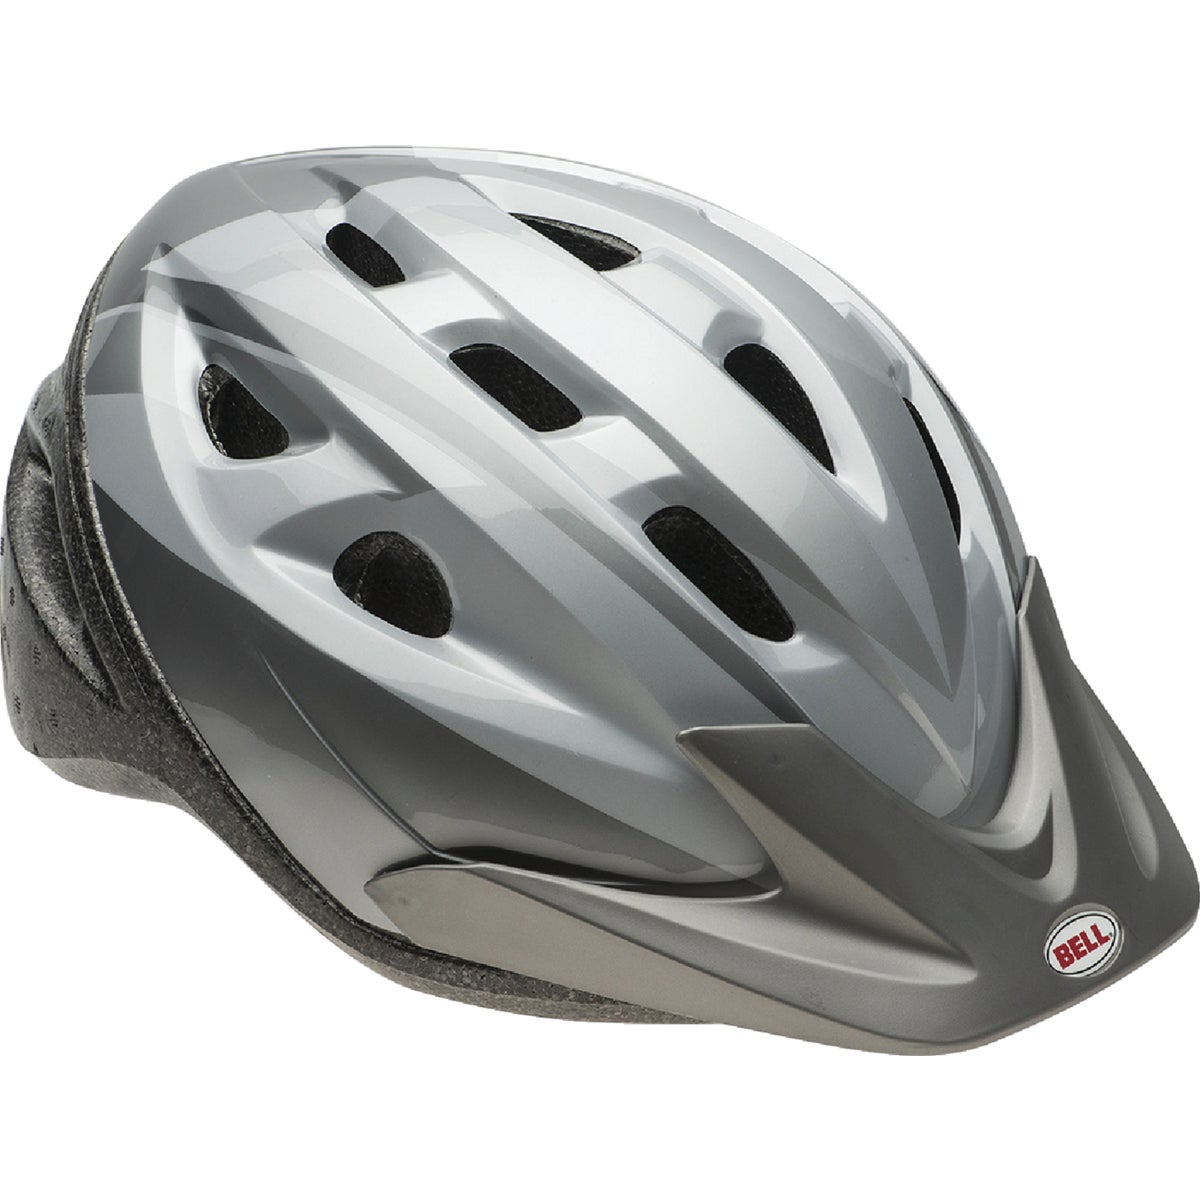 14+ M/L ADULT HELMET - 7049700 by Bell Sports